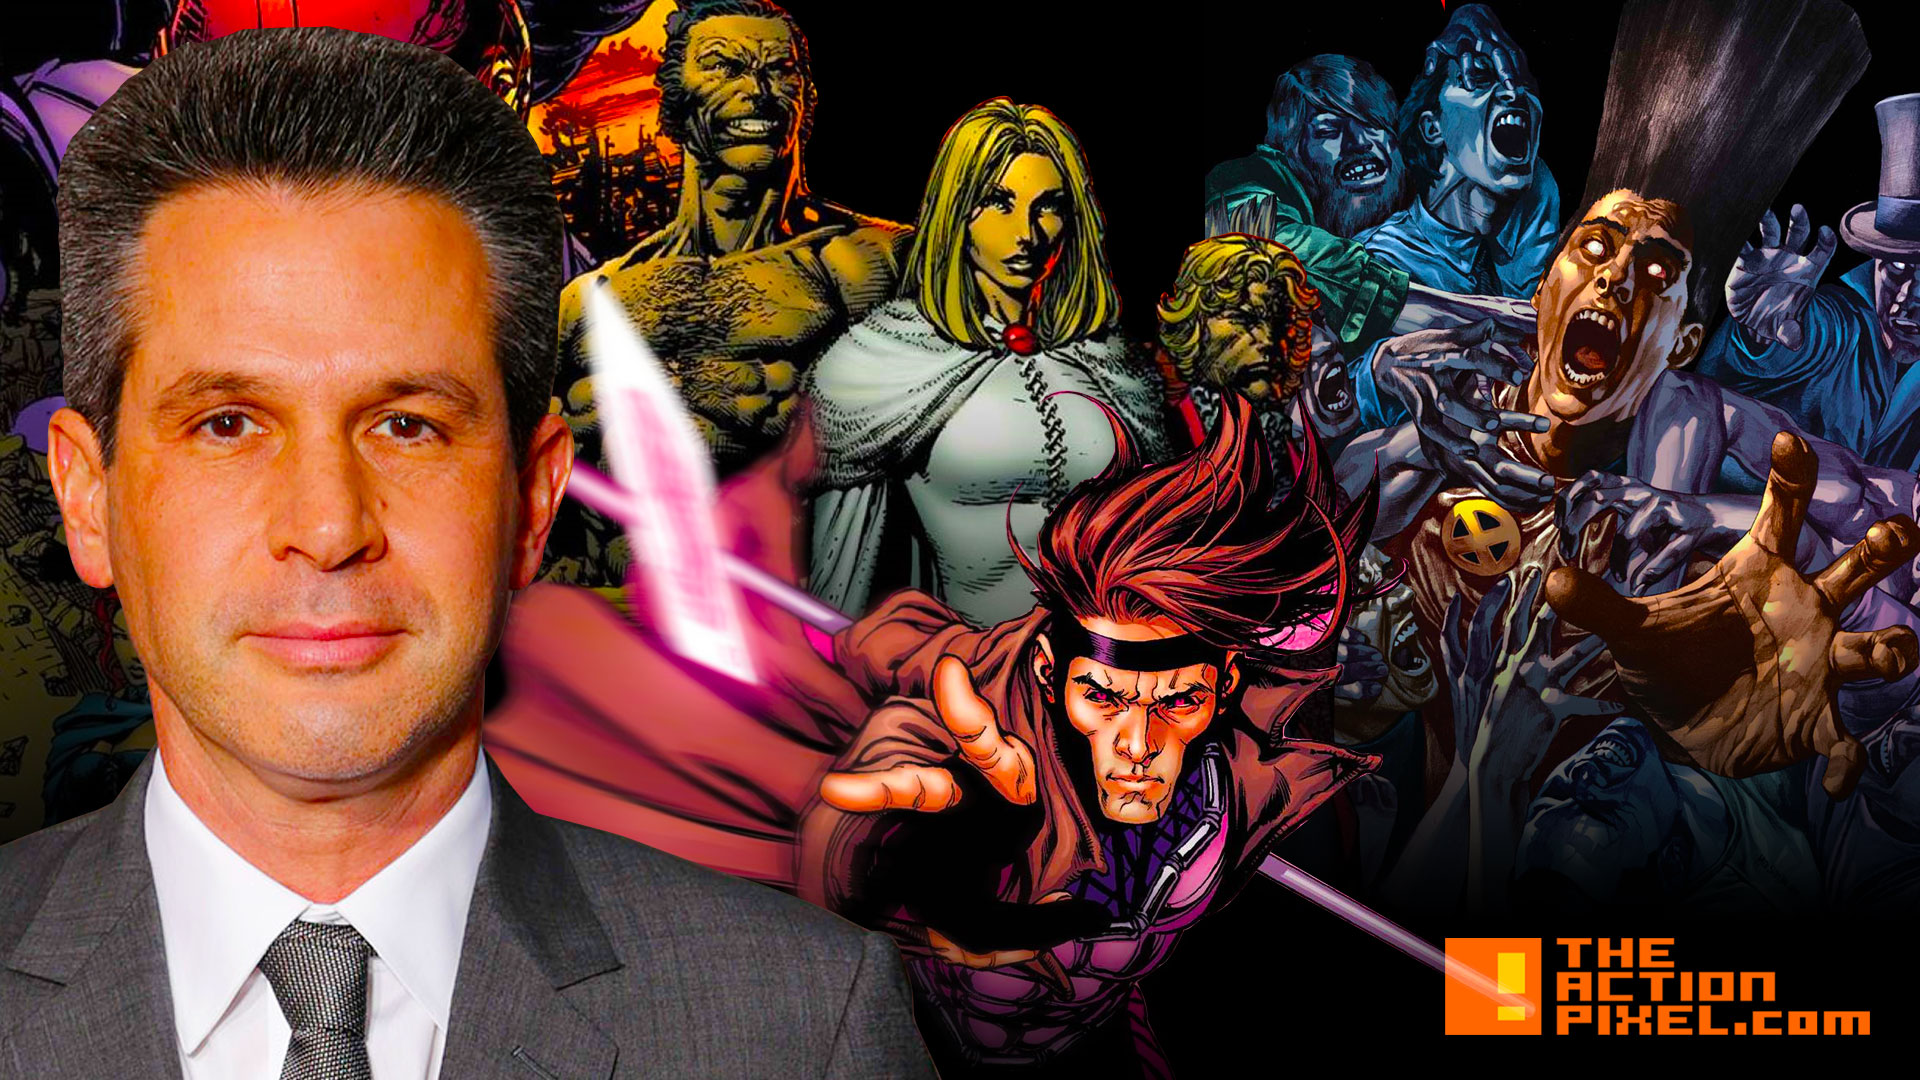 simon kinberg. hellfire. legion. gambit. the action pixel. @theactionpixel